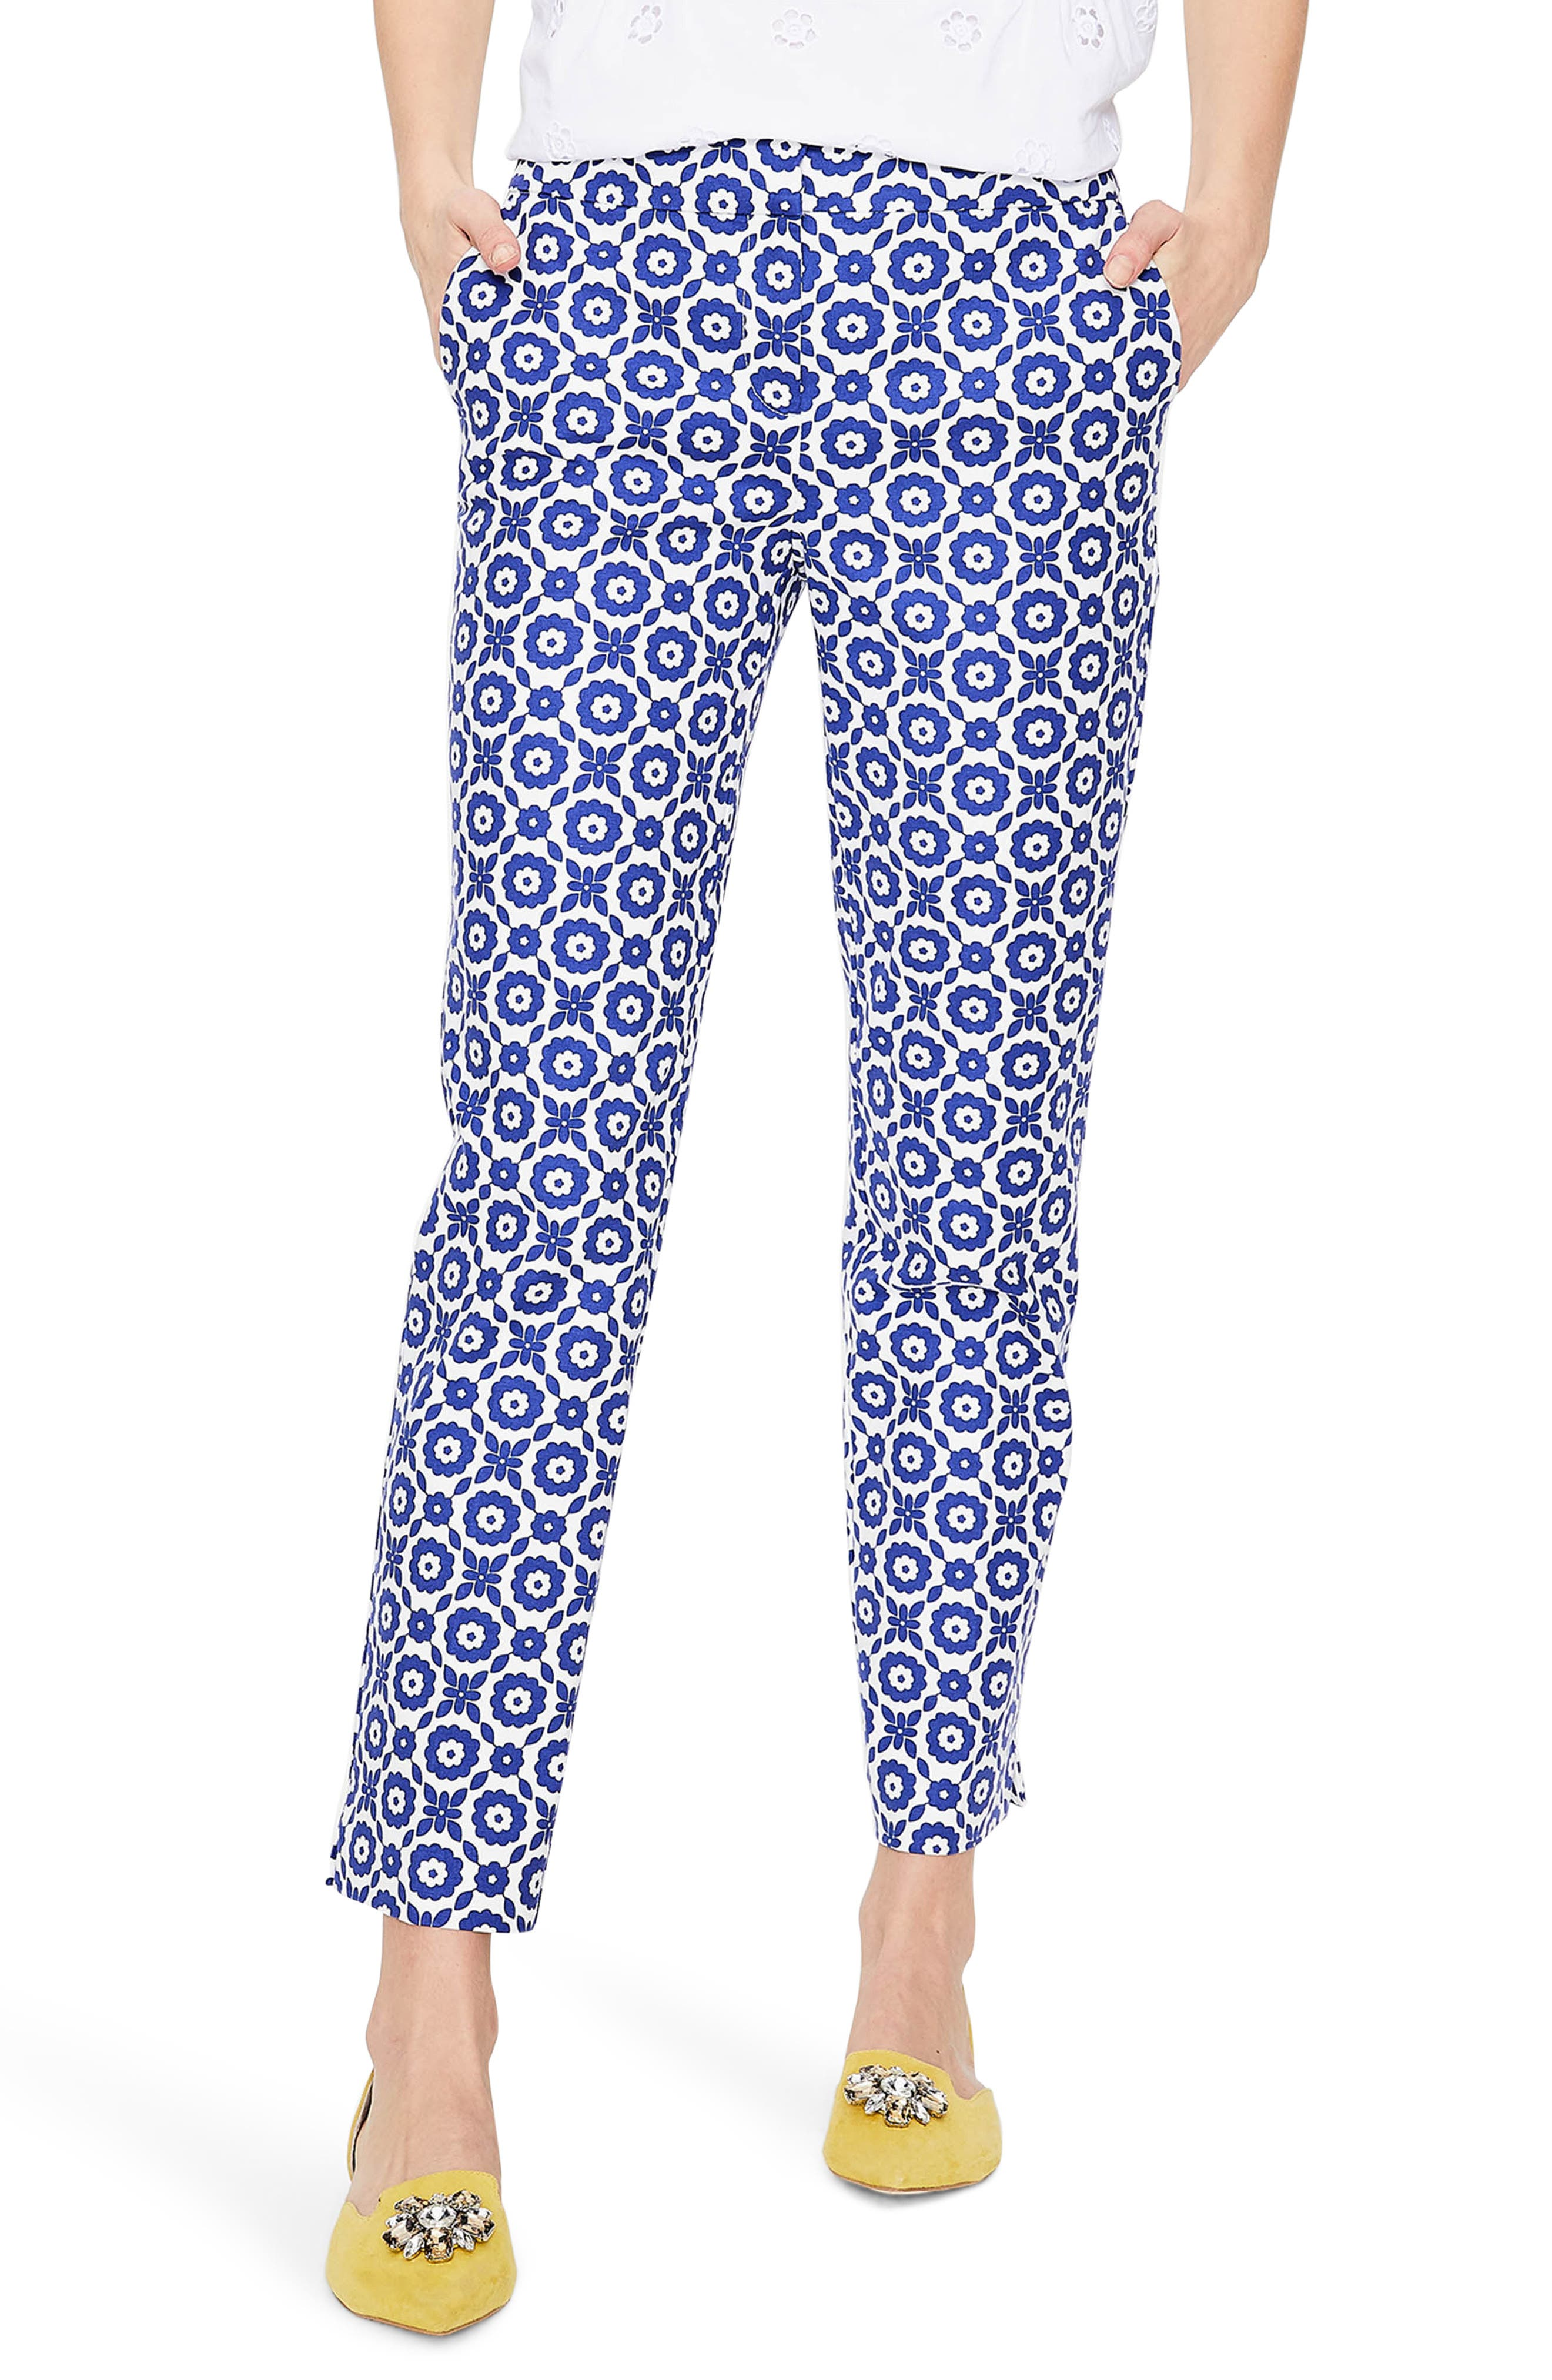 Richmond Polka Dot Stripe Contrast Ankle Pants,                         Main,                         color, Greek Blue/ Daisy Chain